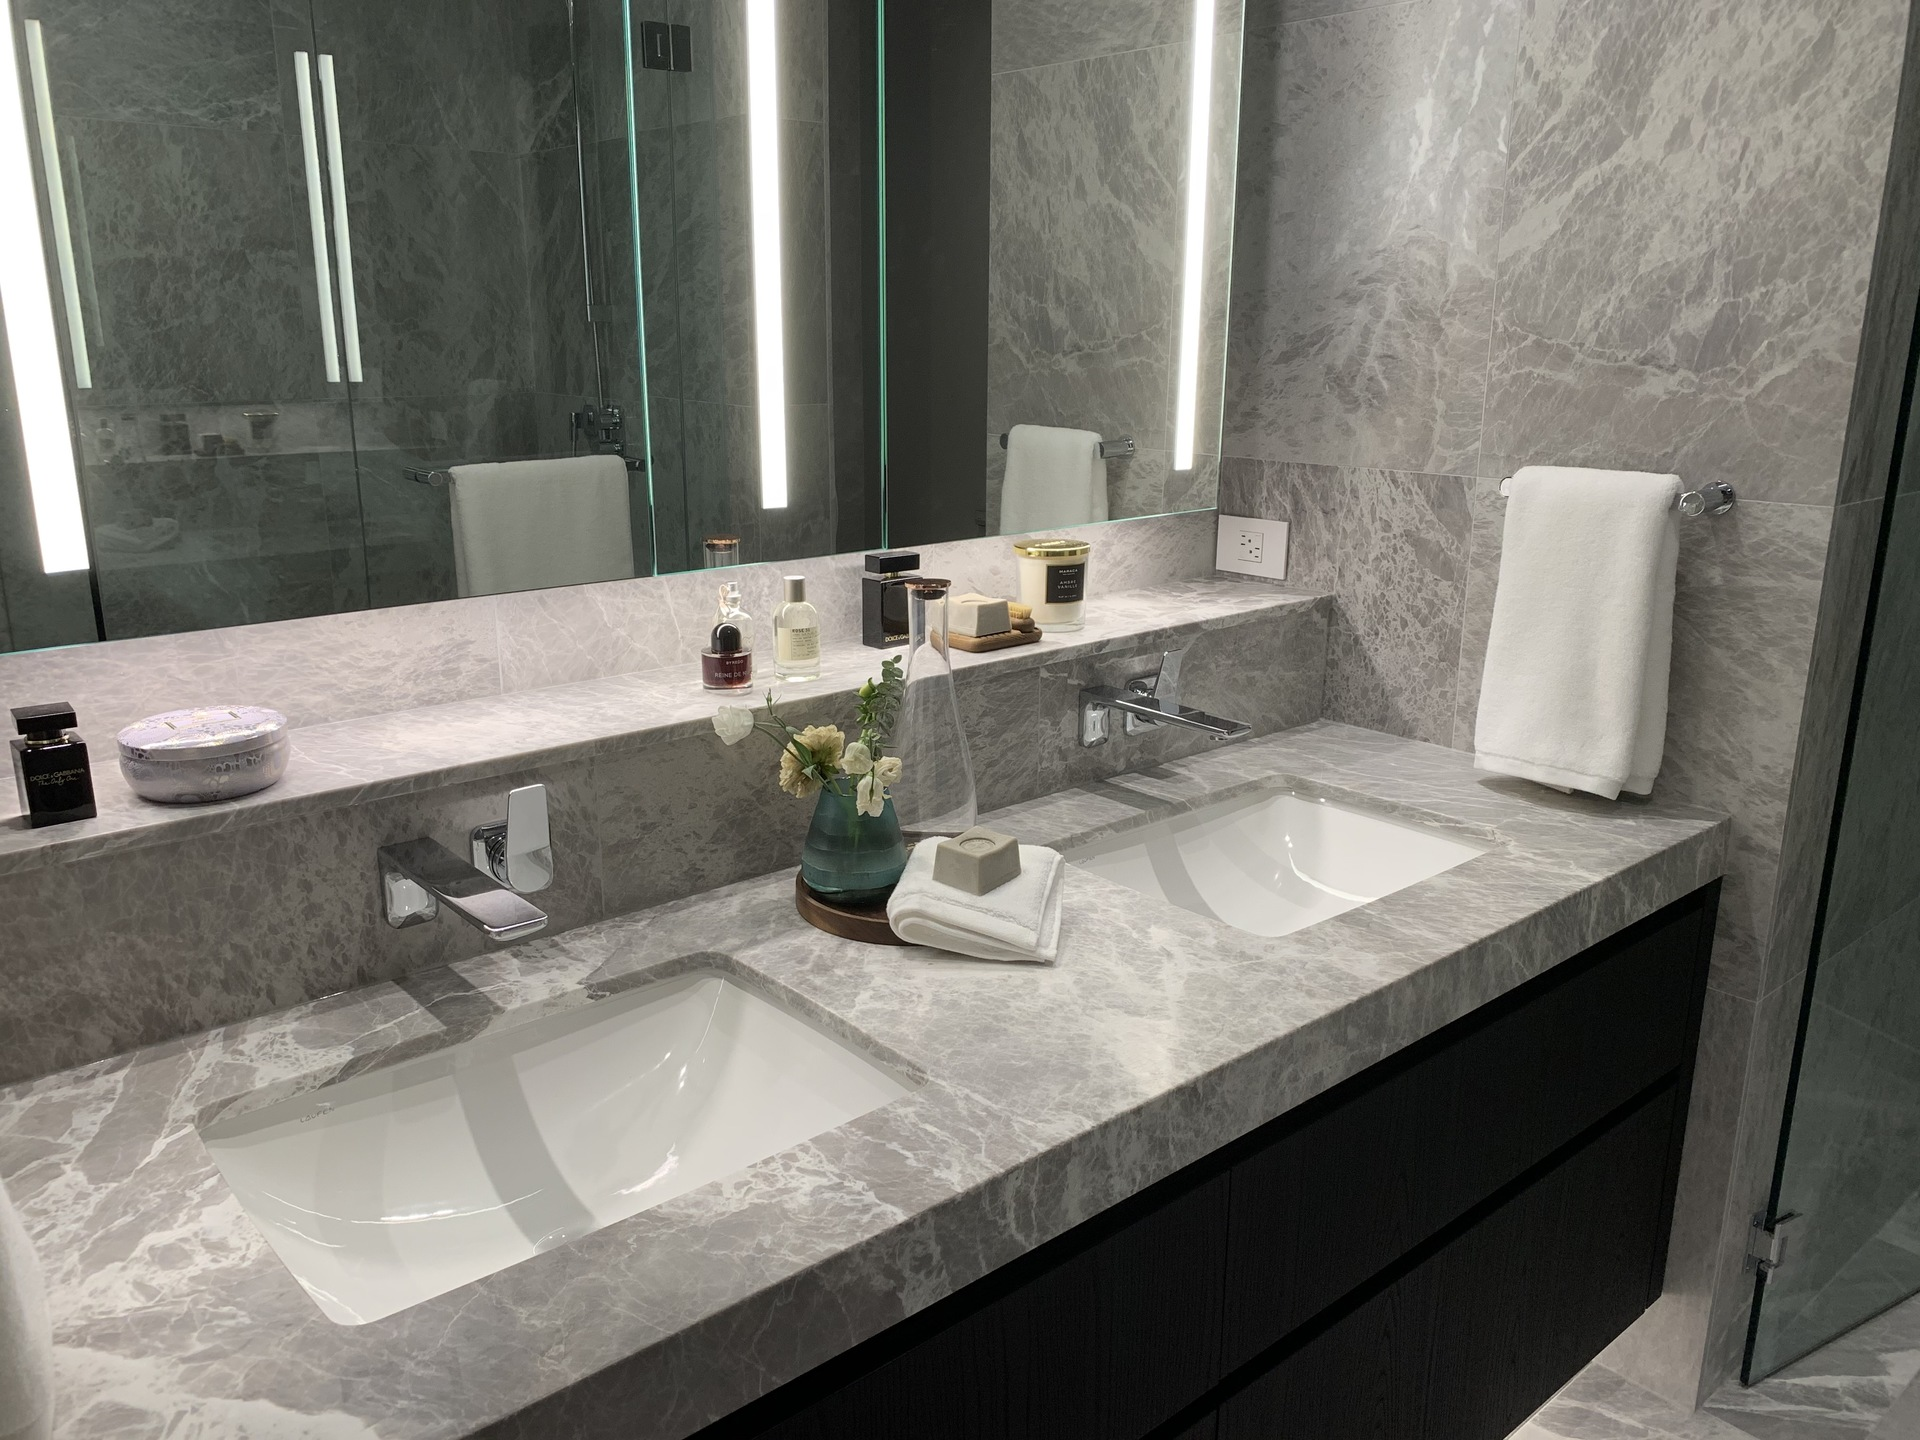 Tesoro ensuite double sinks with marble slab countertop at TESORO 1551 Quebec - The Creek Building 5 (1551 Quebec, False Creek, Vancouver West)